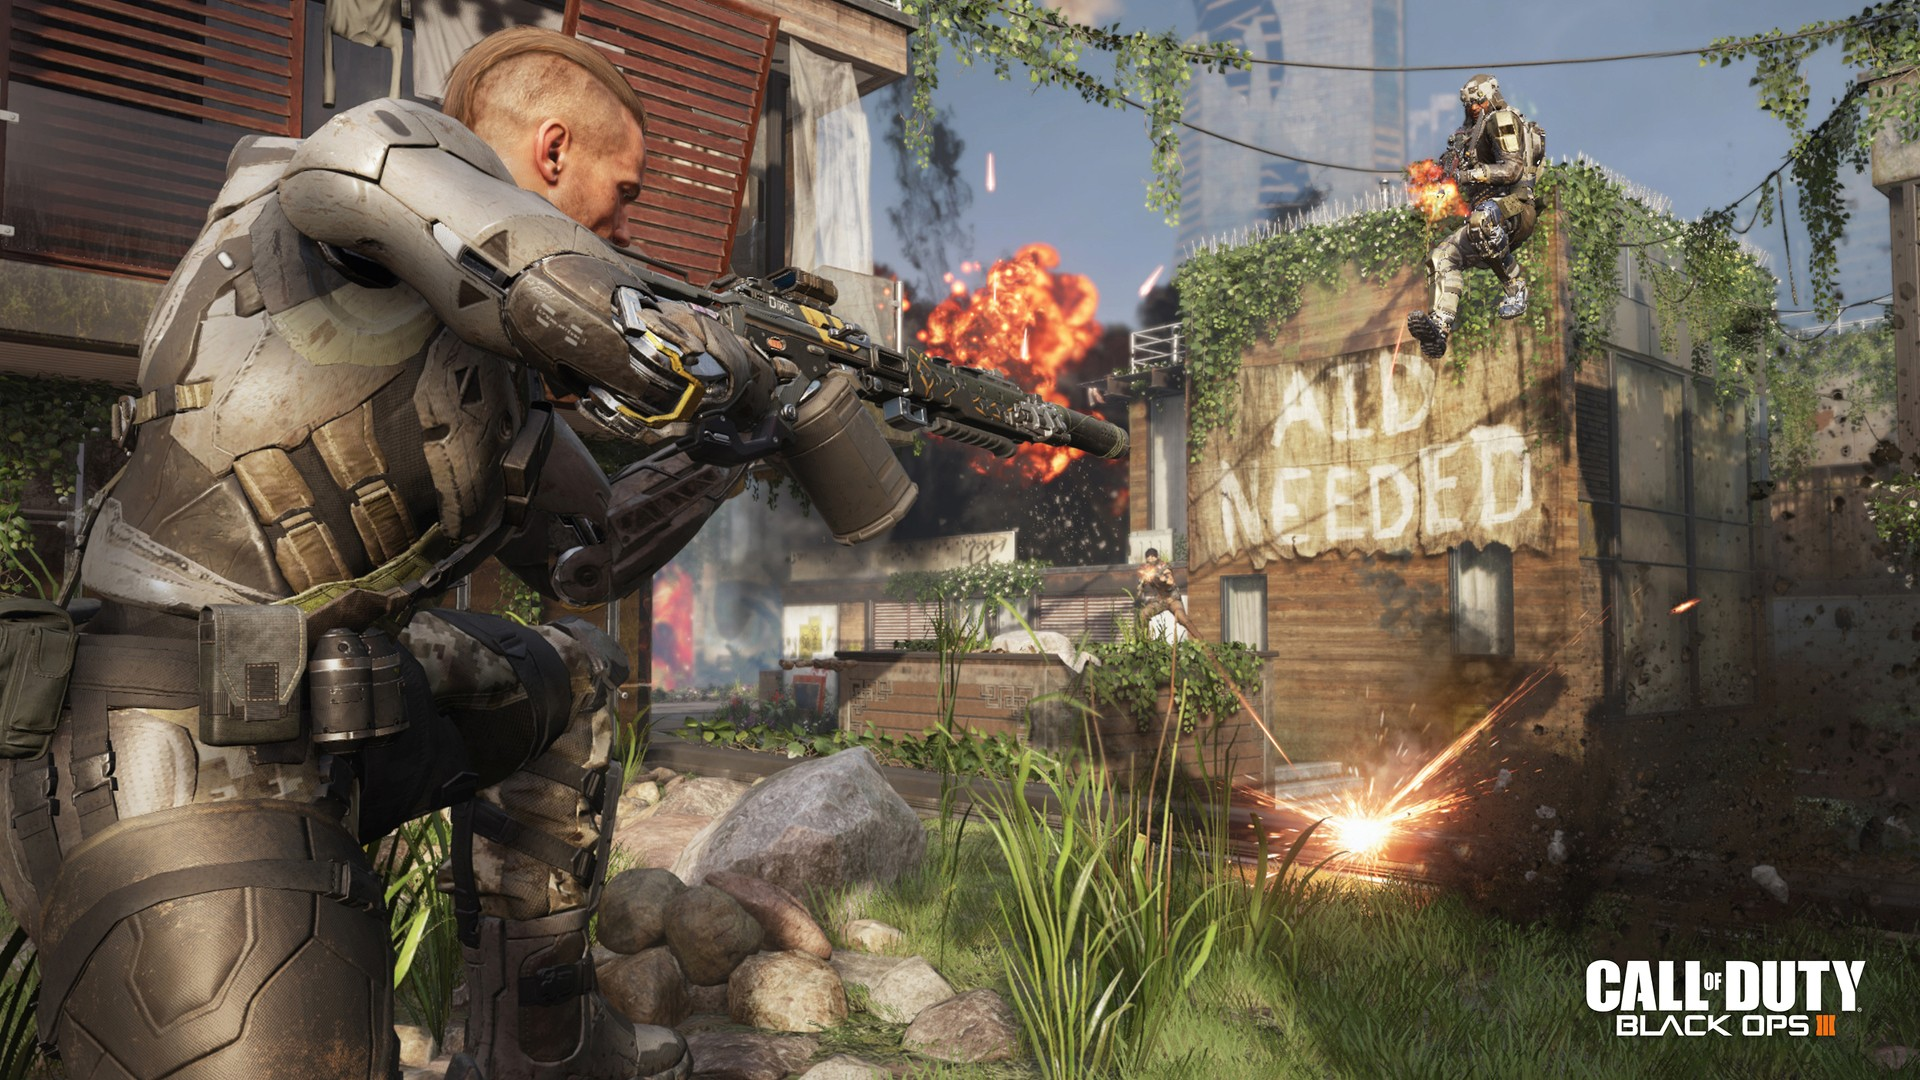 Call Of Duty Black Ops 3 Is A Surprise Free Playstation Plus Game